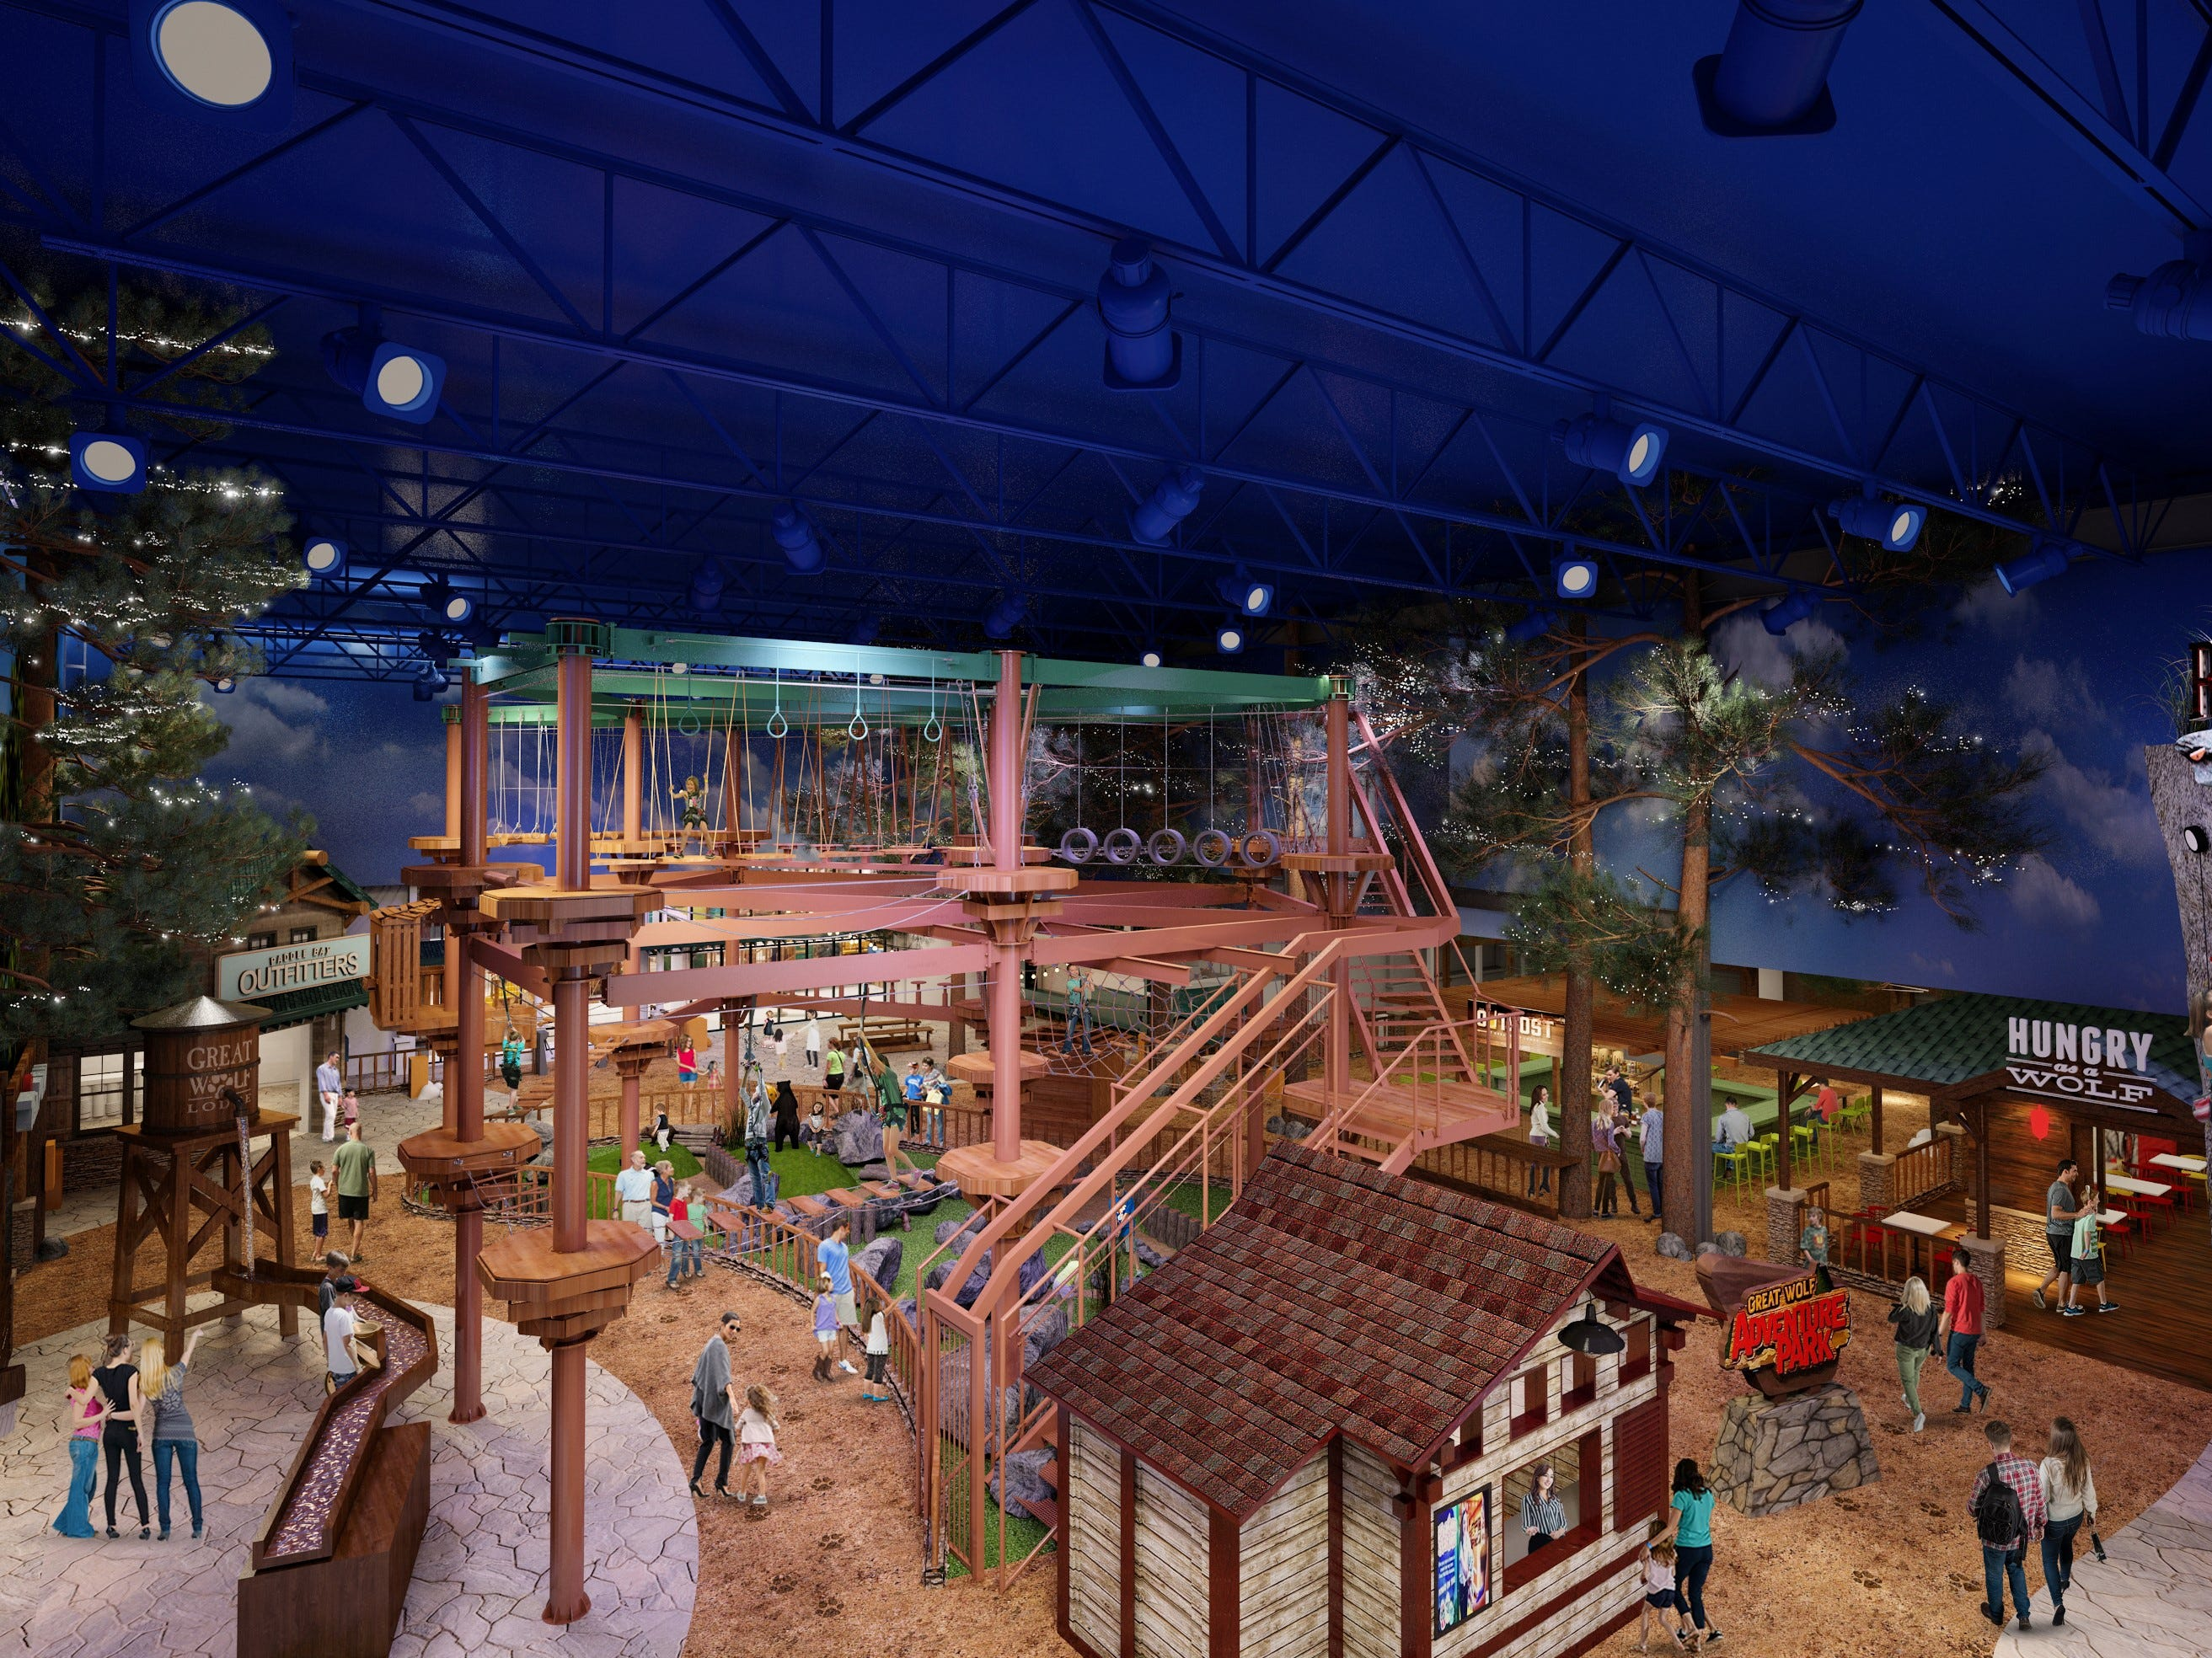 The Adventure Park is the dry portion of the activities at the Great Wolf Lodge Arizona. It has a ropes course, climbing wall, mini golf,  and bowling.